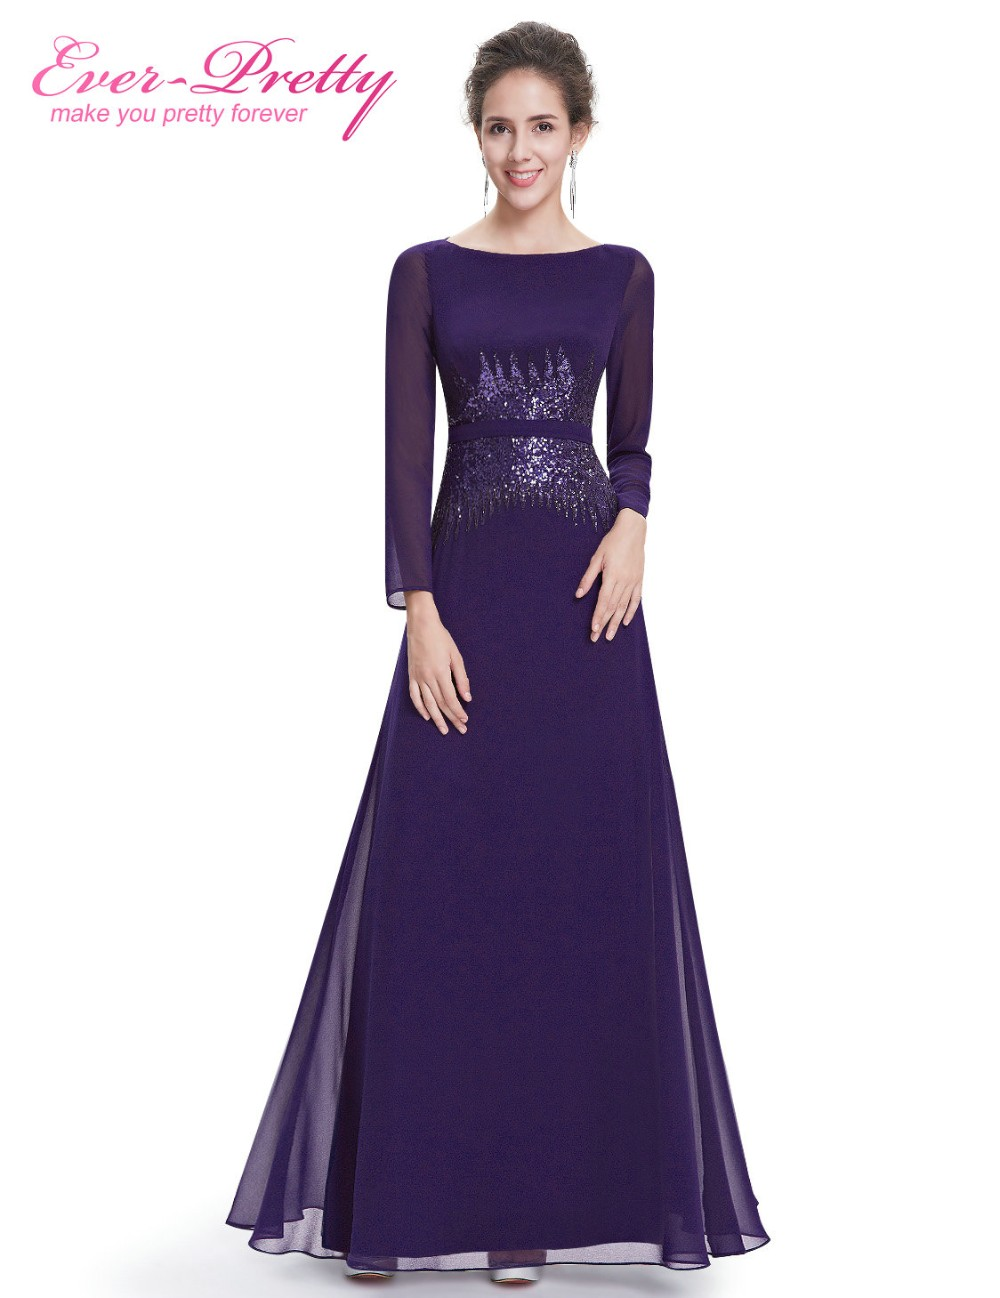 Compare Prices on Blue Evening Gown- Online Shopping/Buy Low Price ...